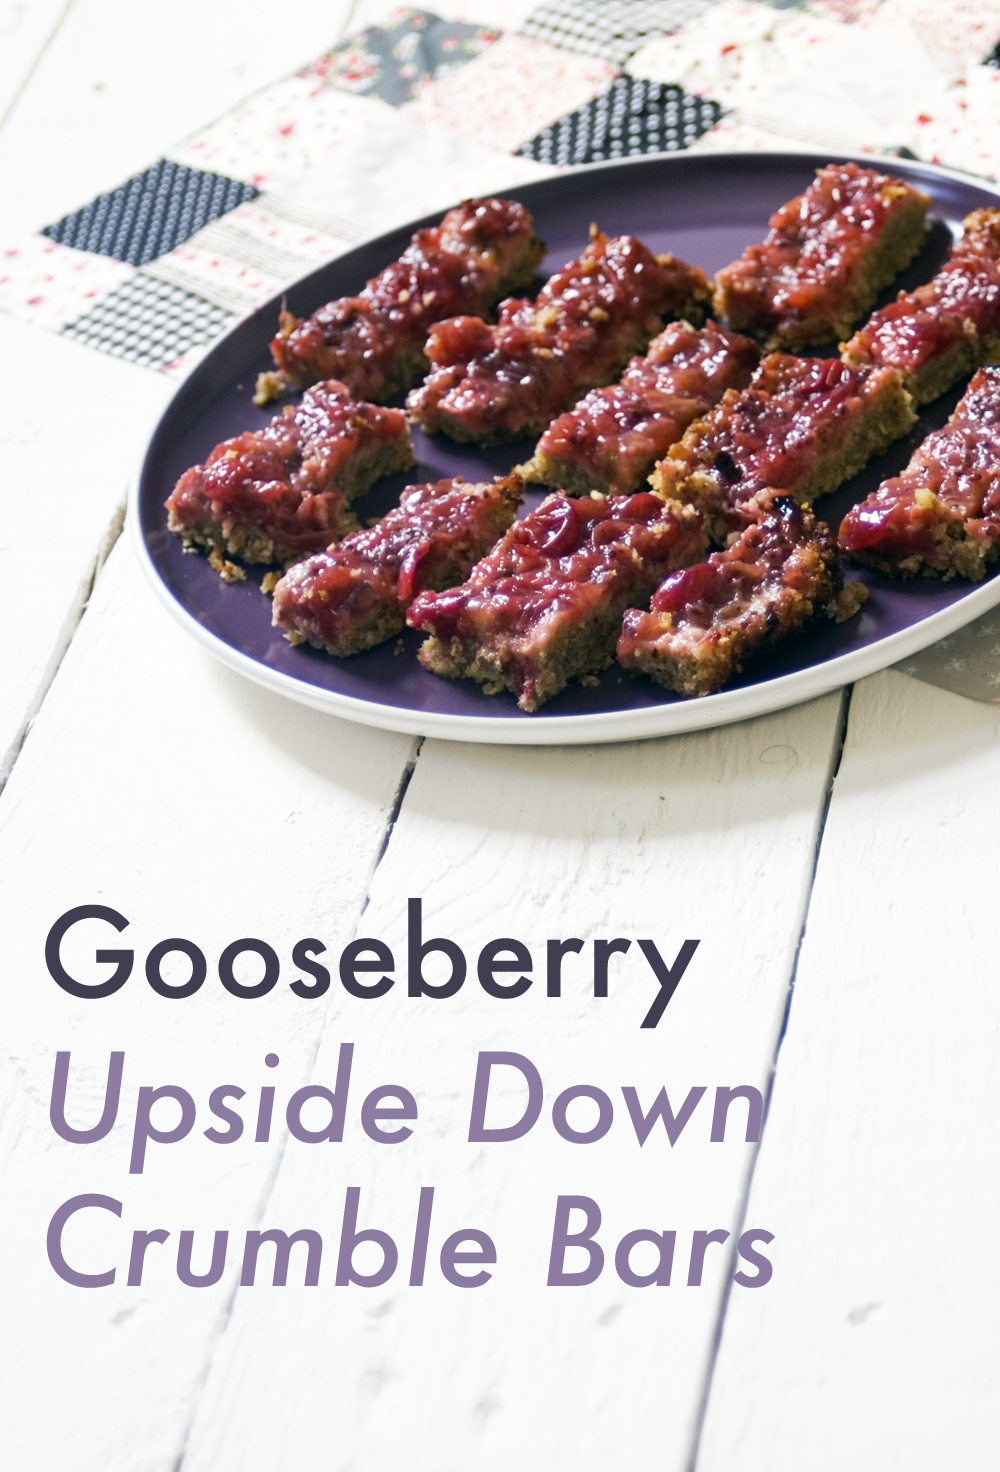 Gooseberry upside down crumble bars, refined sugar free, can easily be vegan. Healthy after-school snack or dessert for kids. Delicious for grown-ups too.